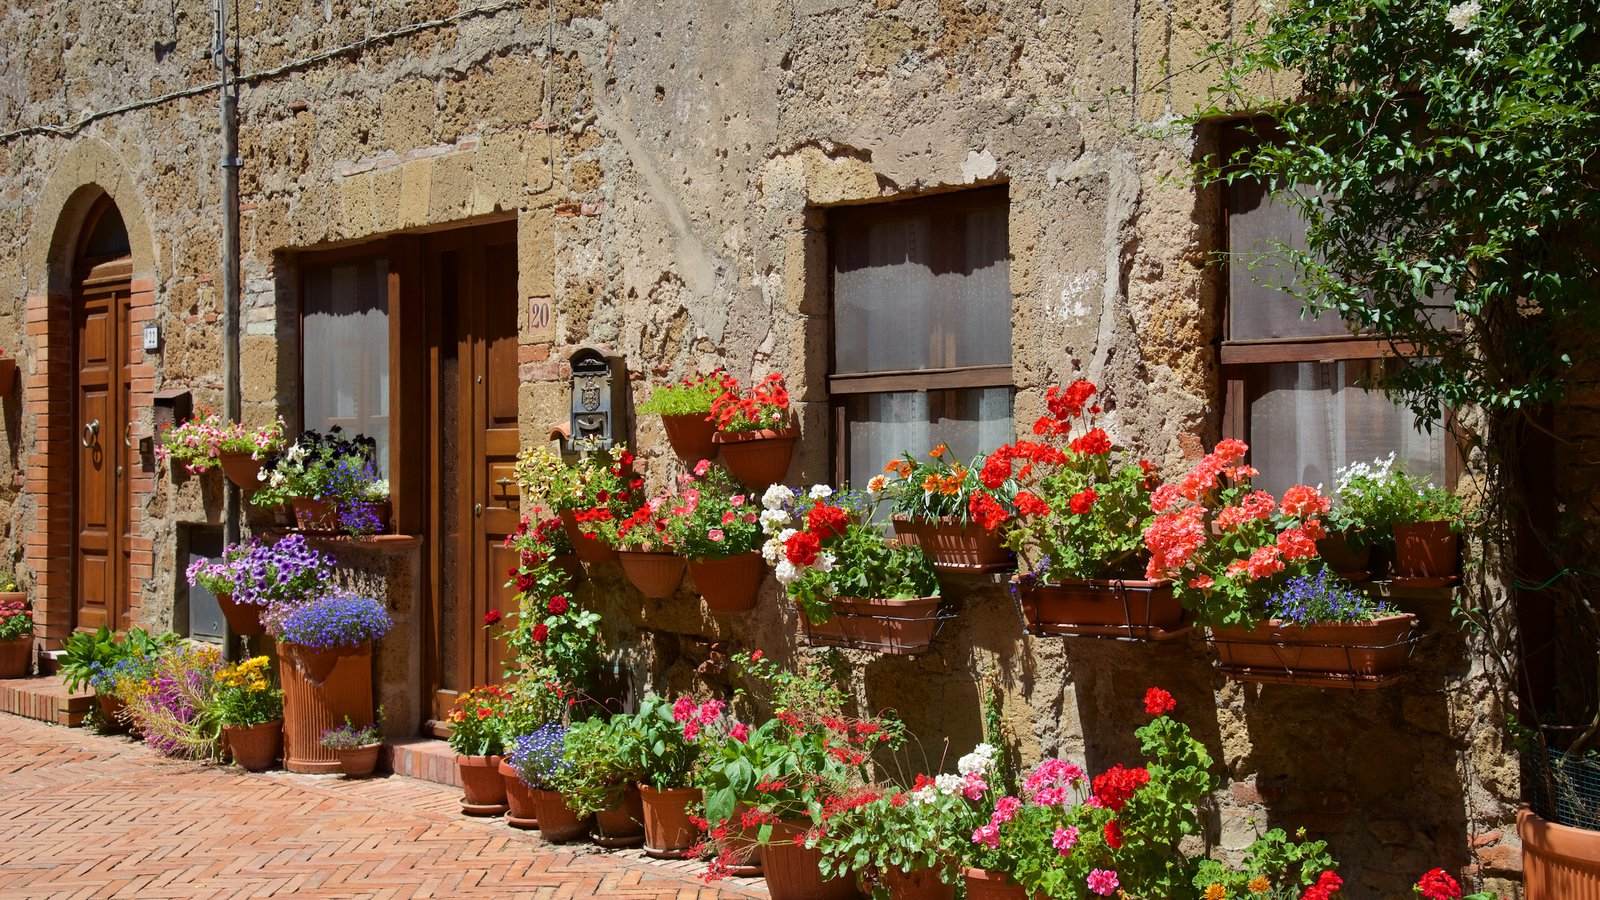 Sovana which includes flowers